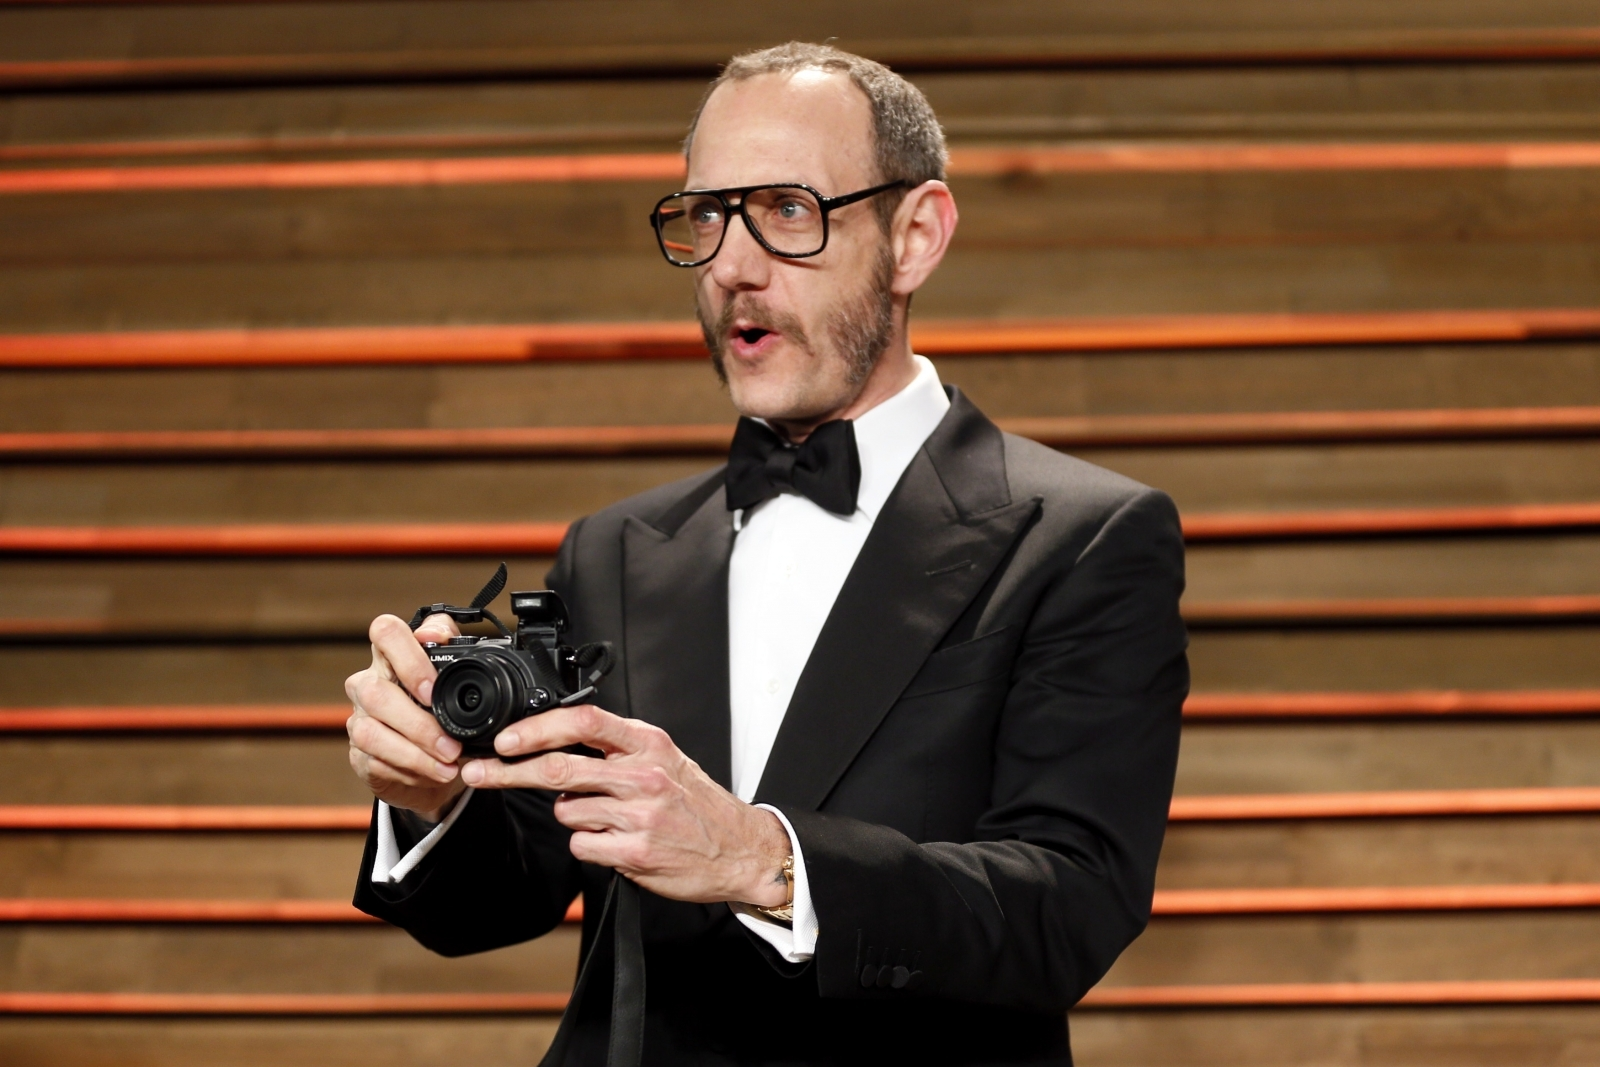 All About Photographer Terry Richardson, the Accused Sexual Predator Banned From Vogue